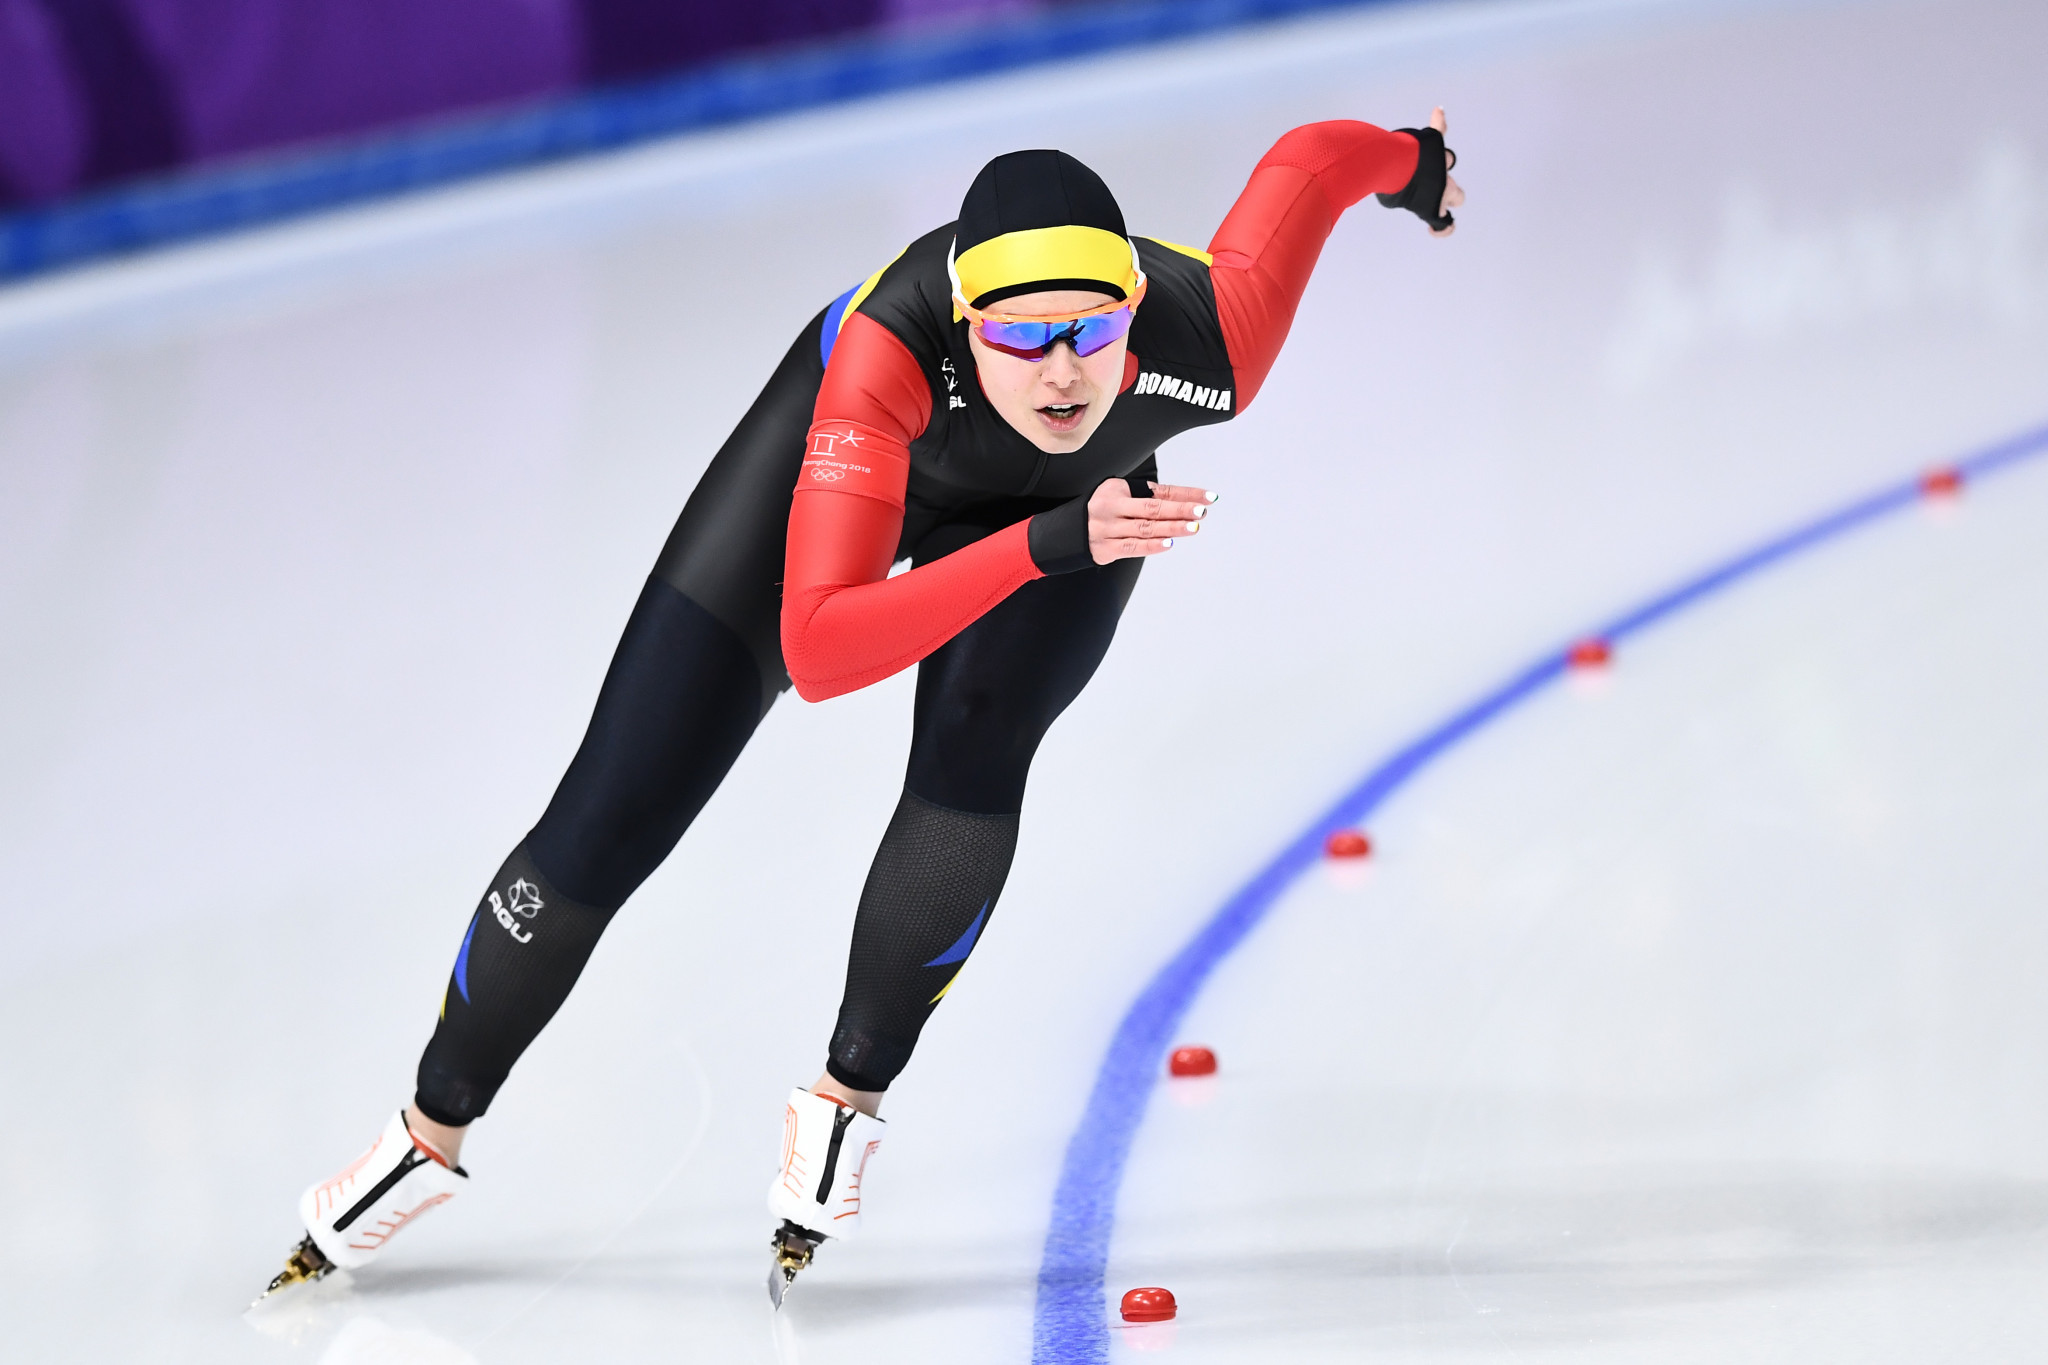 Romanian speed skater Ianculescu to move to The Netherlands for training